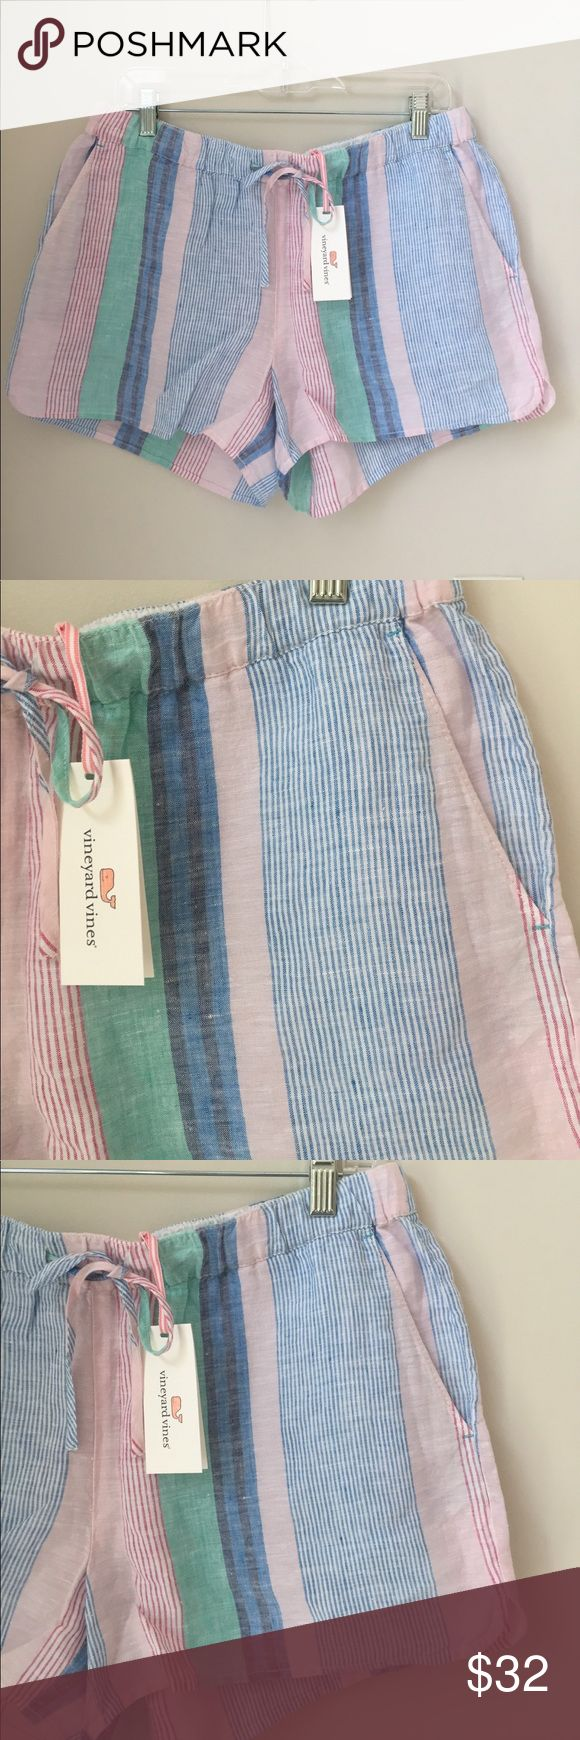 Vineyard Vines Shorts NWT!! Pull on shorts; drawstring; side pockets; back pockets; whale logo embroidered above back pocket Vineyard Vines Shorts